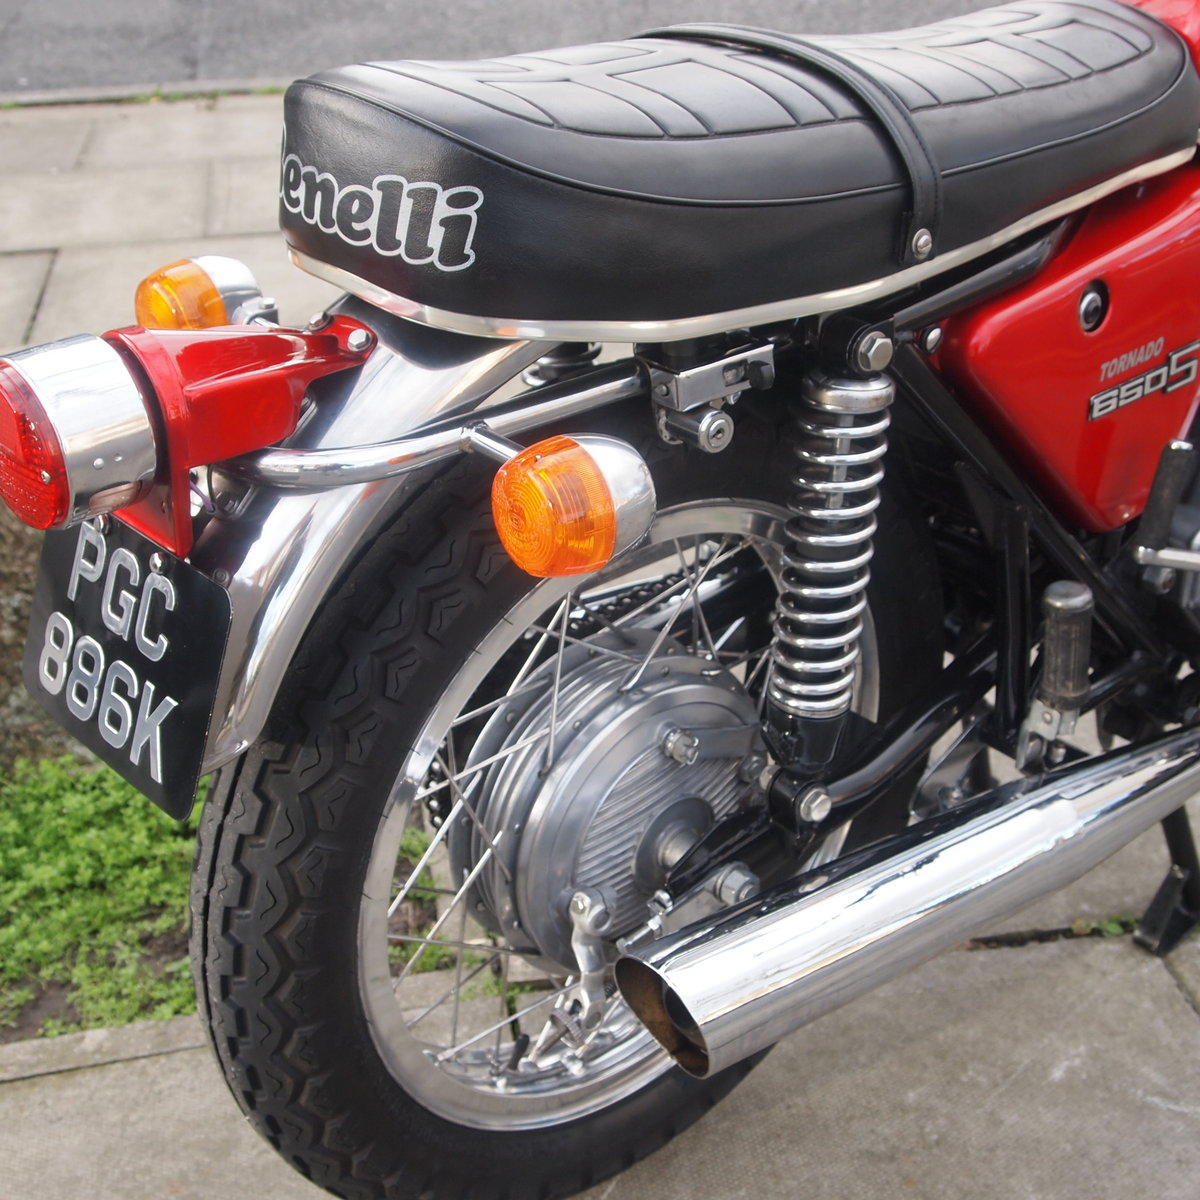 1972 Benelli 650S Tornado Electric, RESERVED FOR JOHN. SOLD (picture 5 of 6)